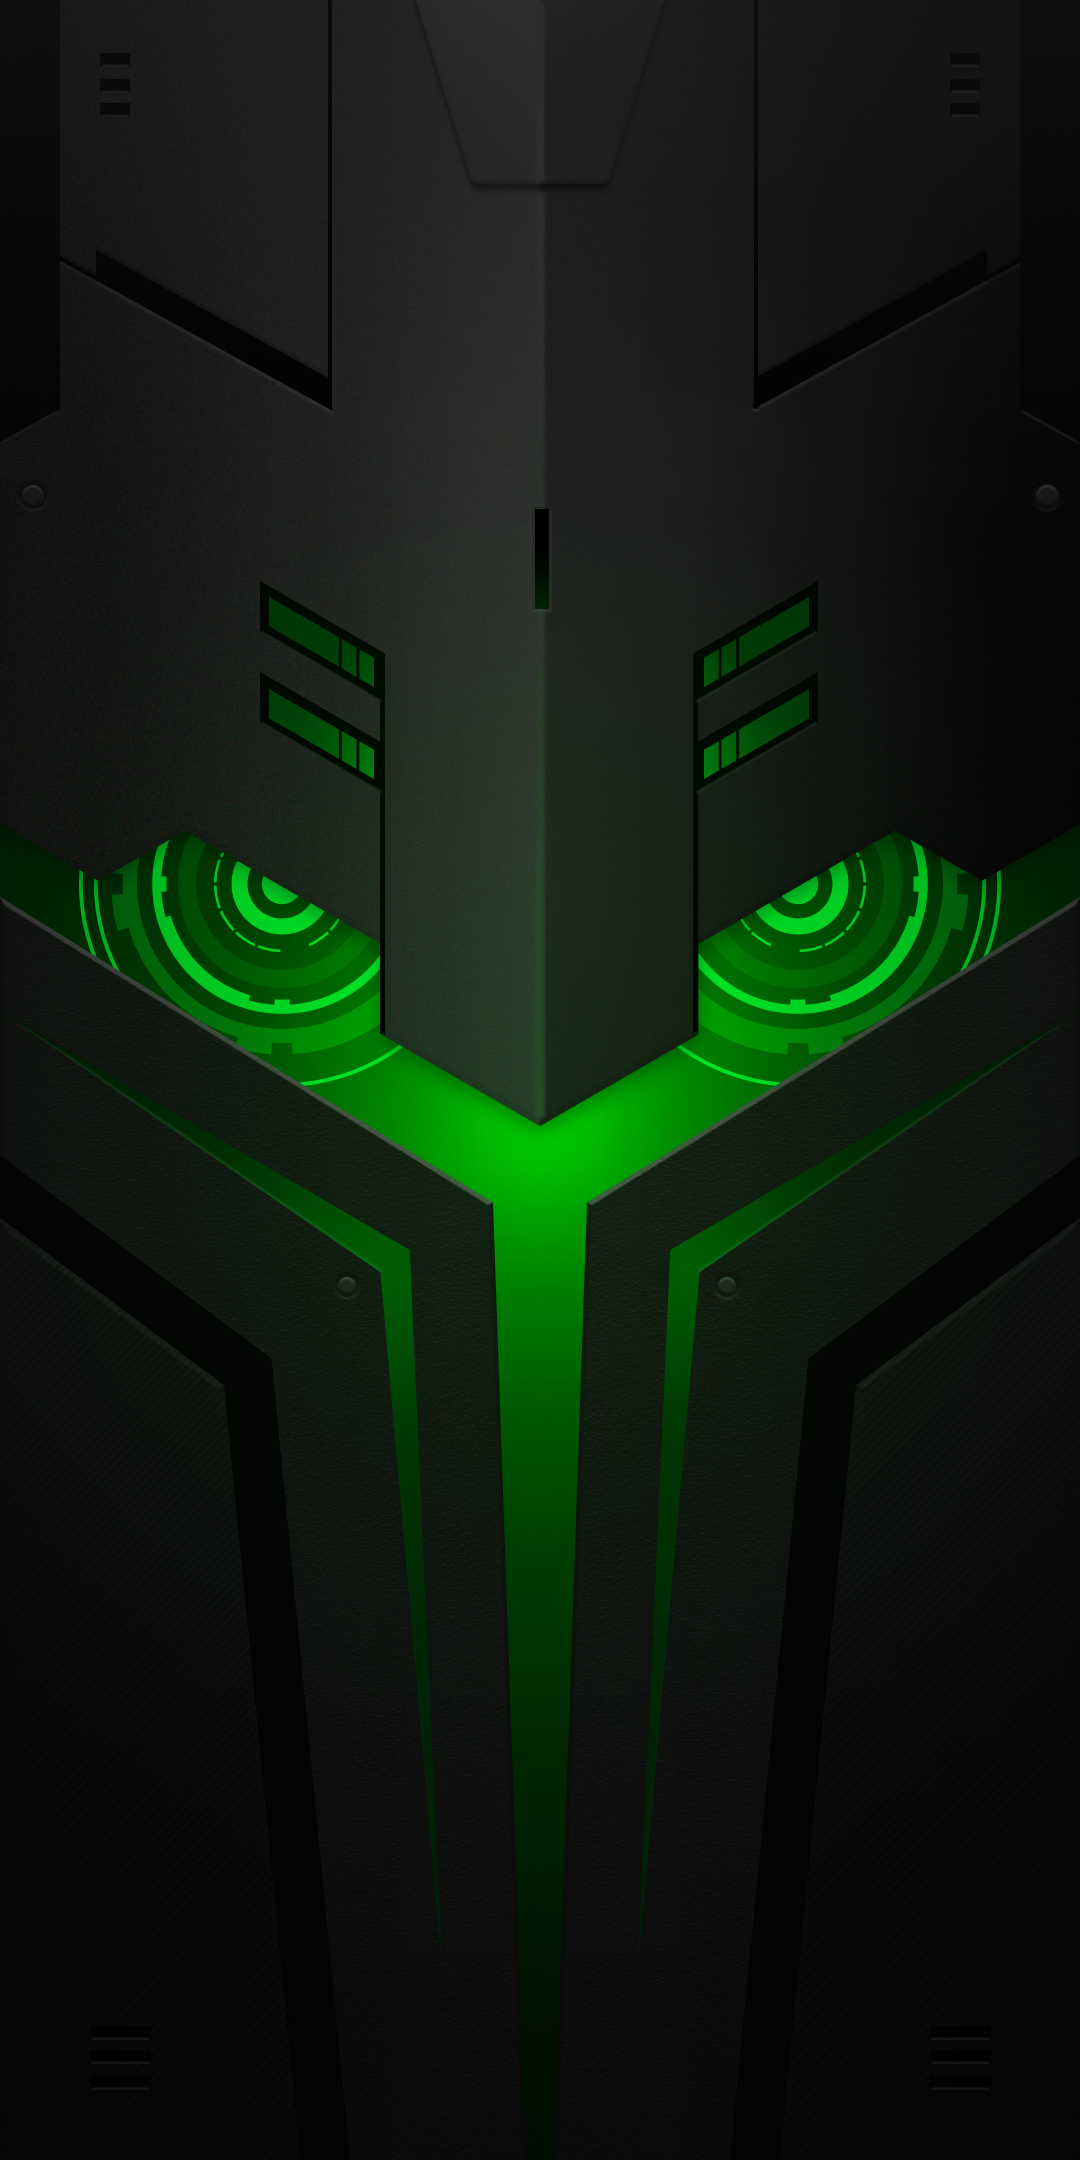 xiaomi black shark helo wallpaper ardroiding 01